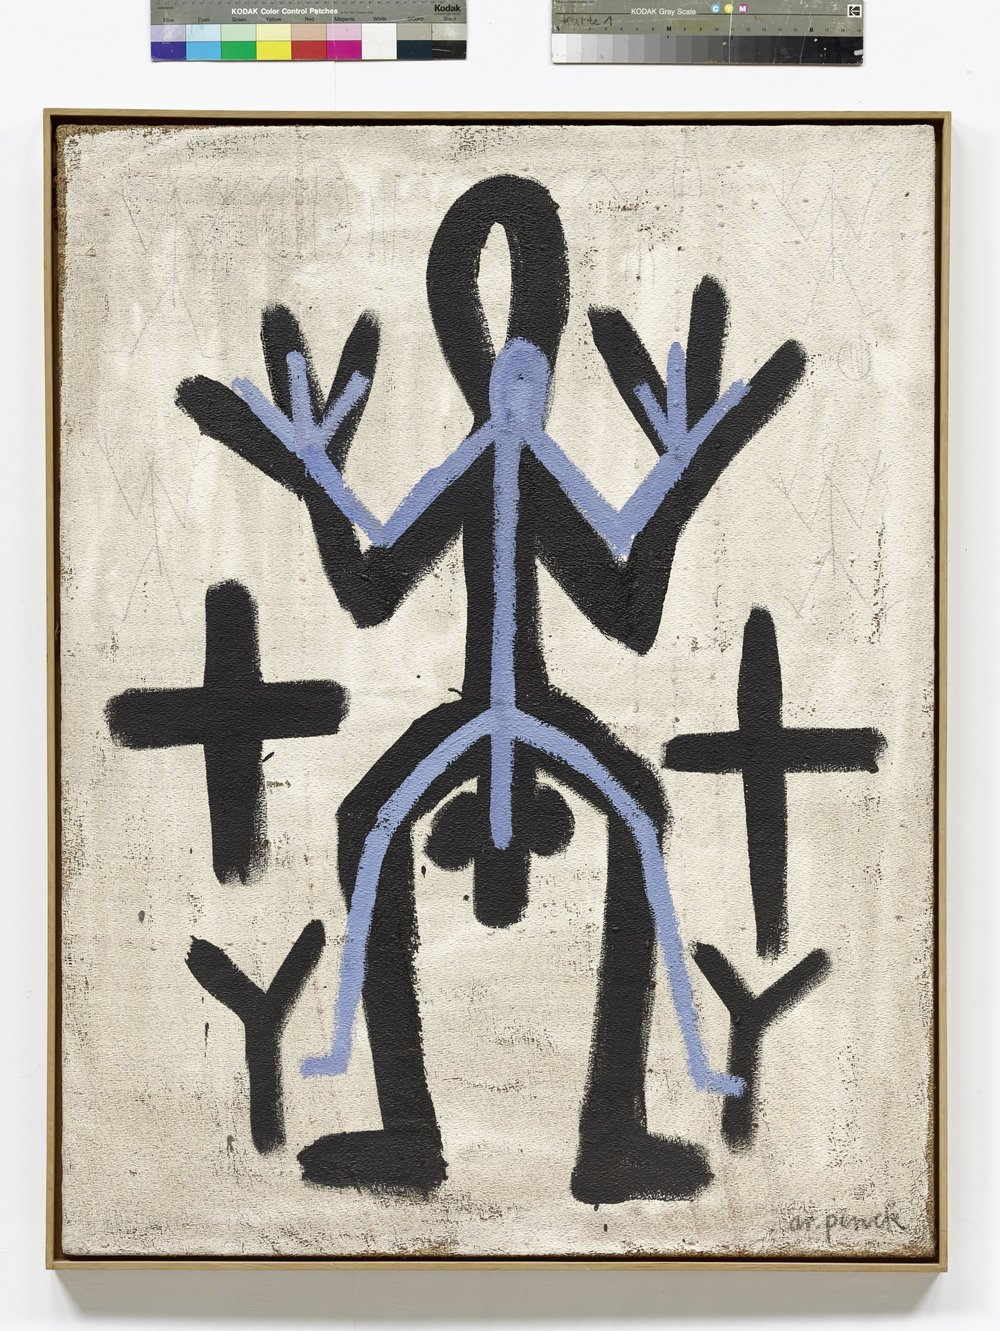 Standart  (1969)  A.R. Penck  Courtesy Fondation Maeght